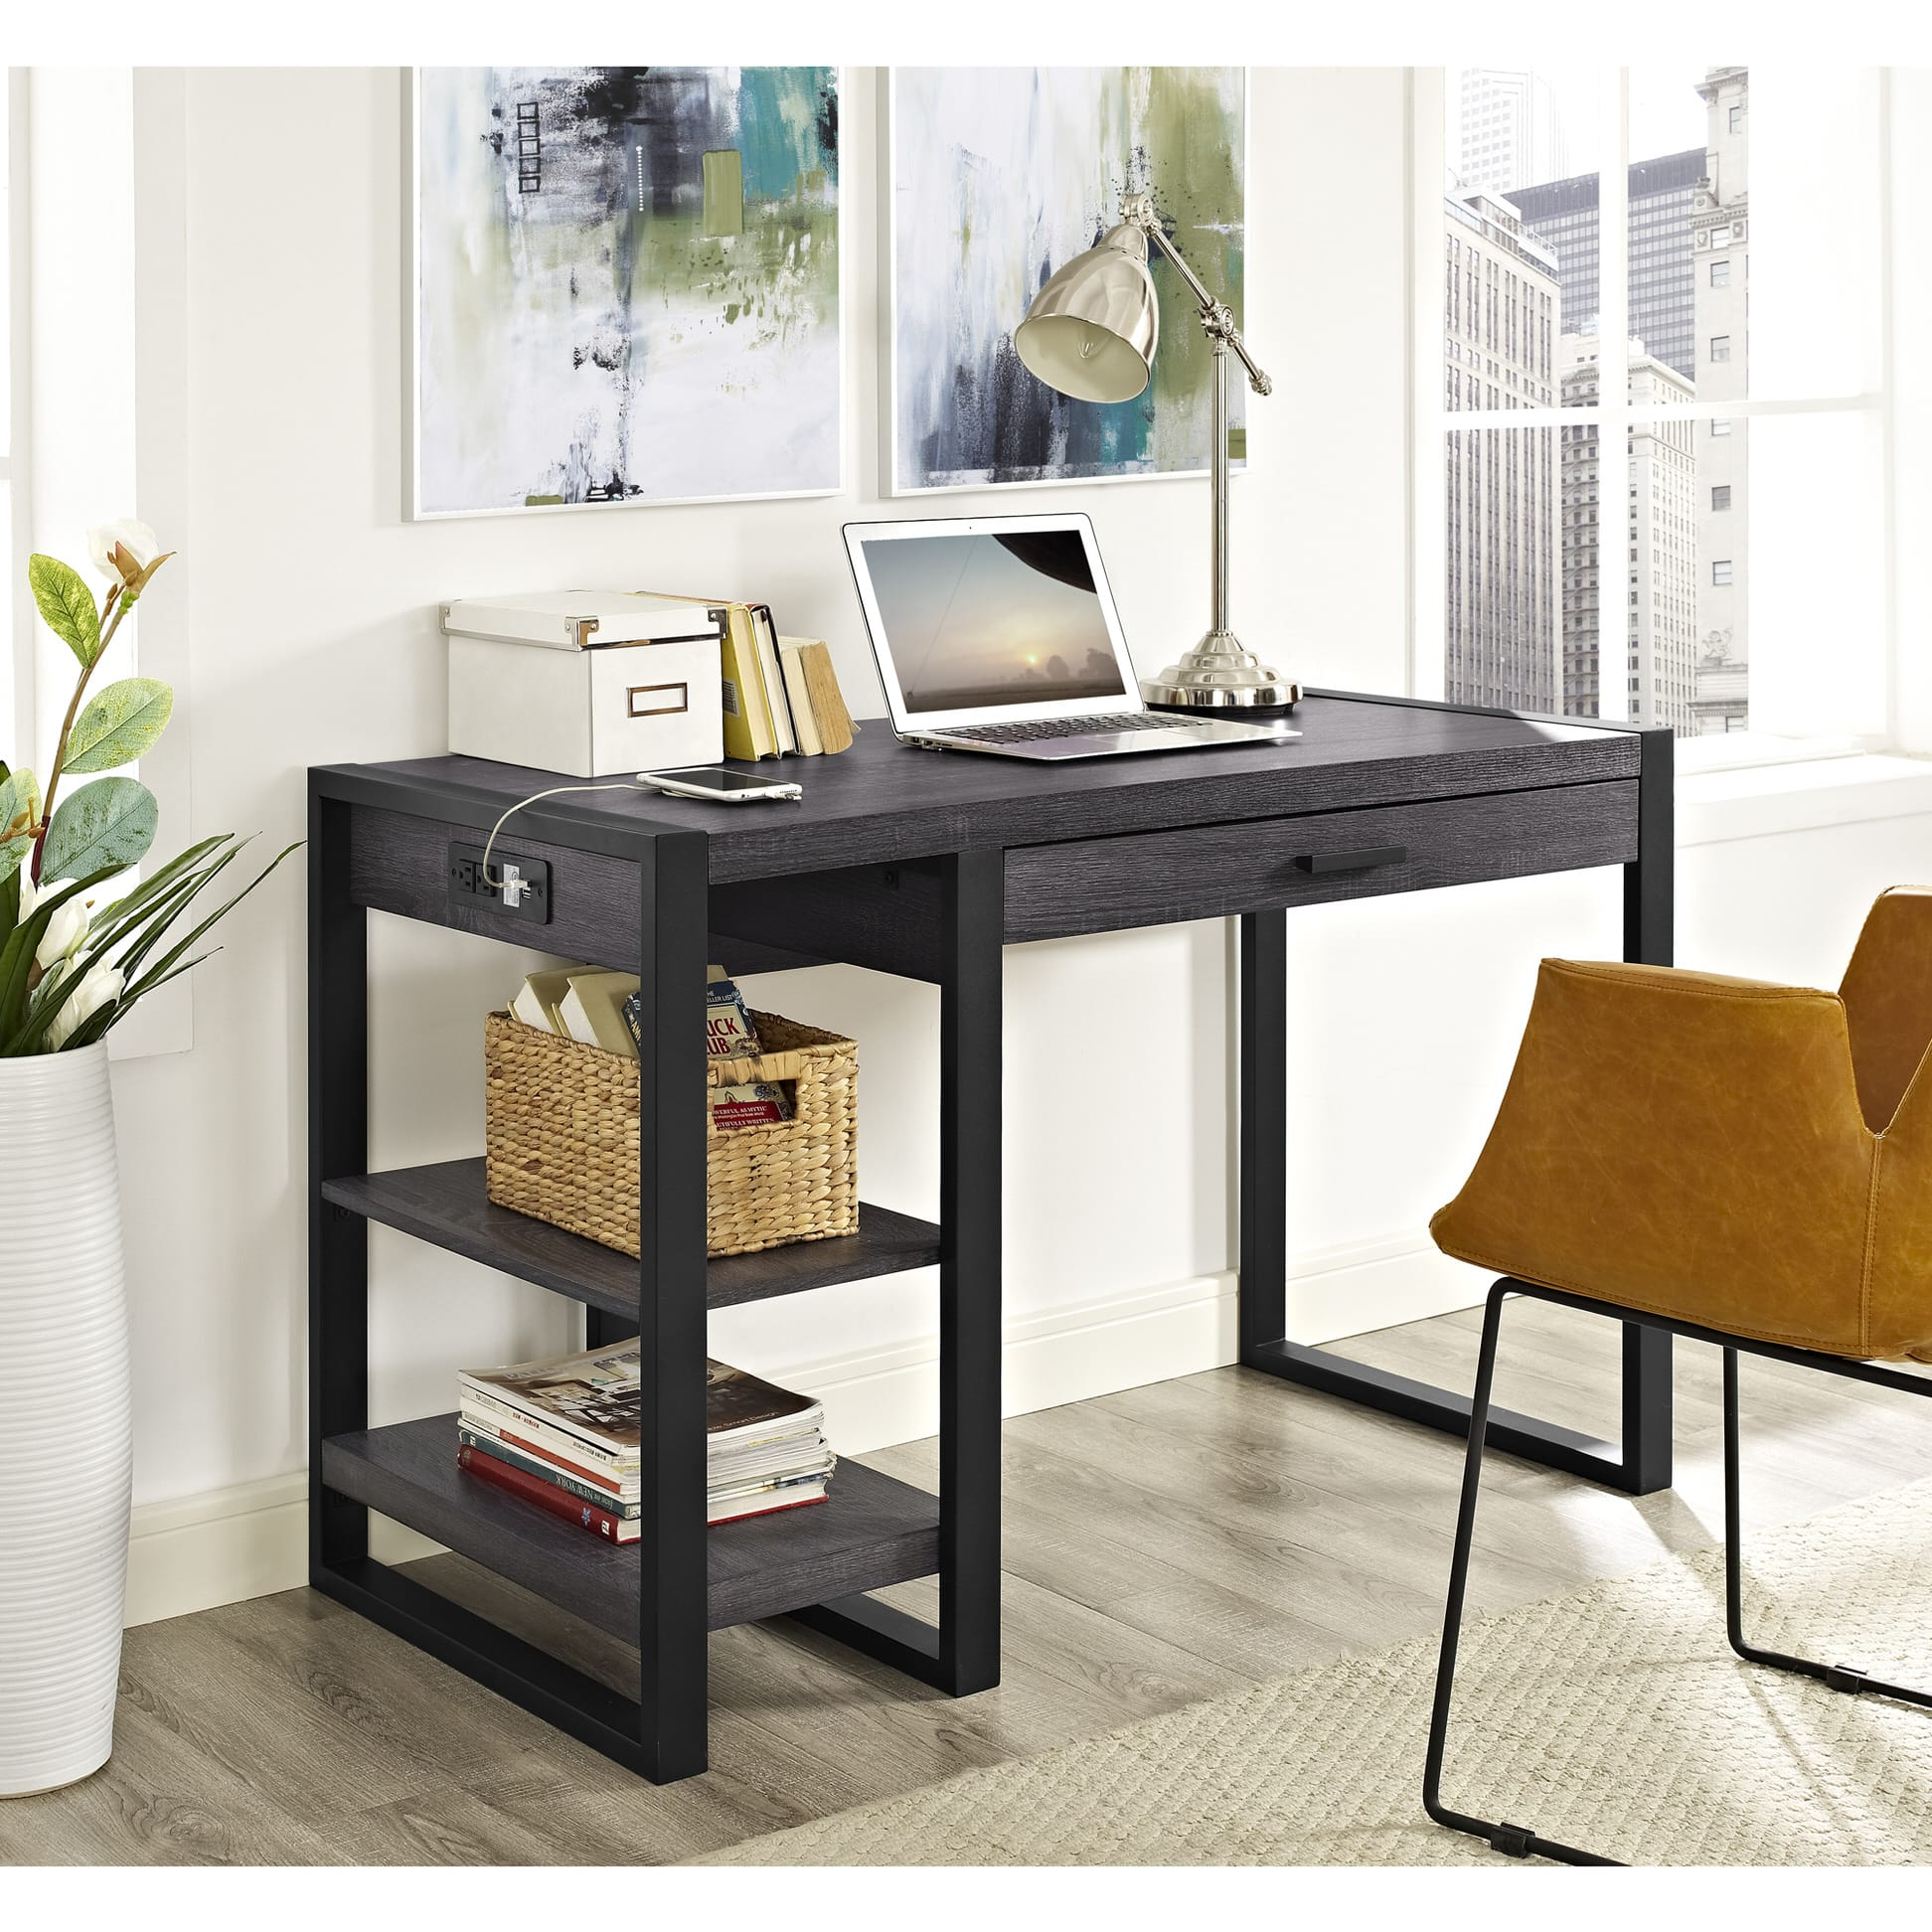 Urban Blend 48 Inch Computer Storage Desk